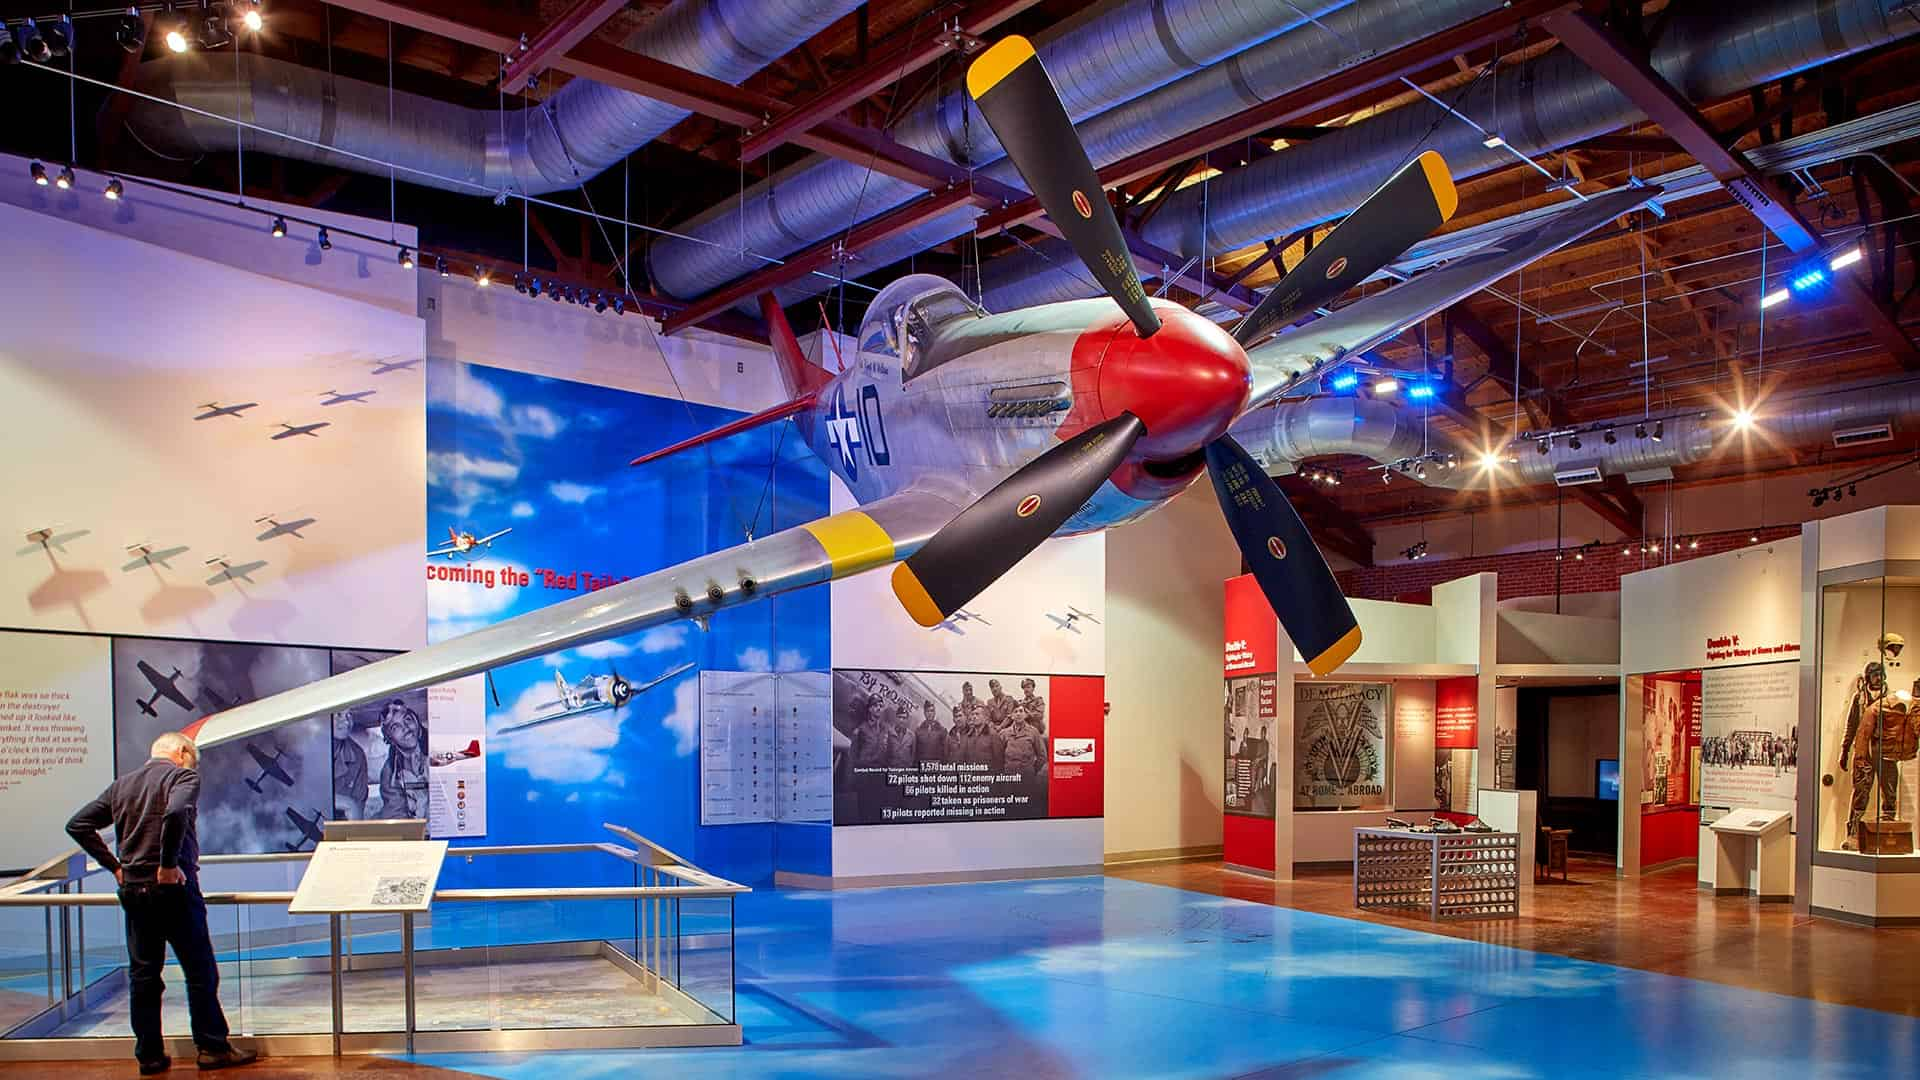 Tuskegee Airmen National Historic Site   US Civil Rights Trail Alabama      Tuskegee      Tuskegee Airmen National Historic Site